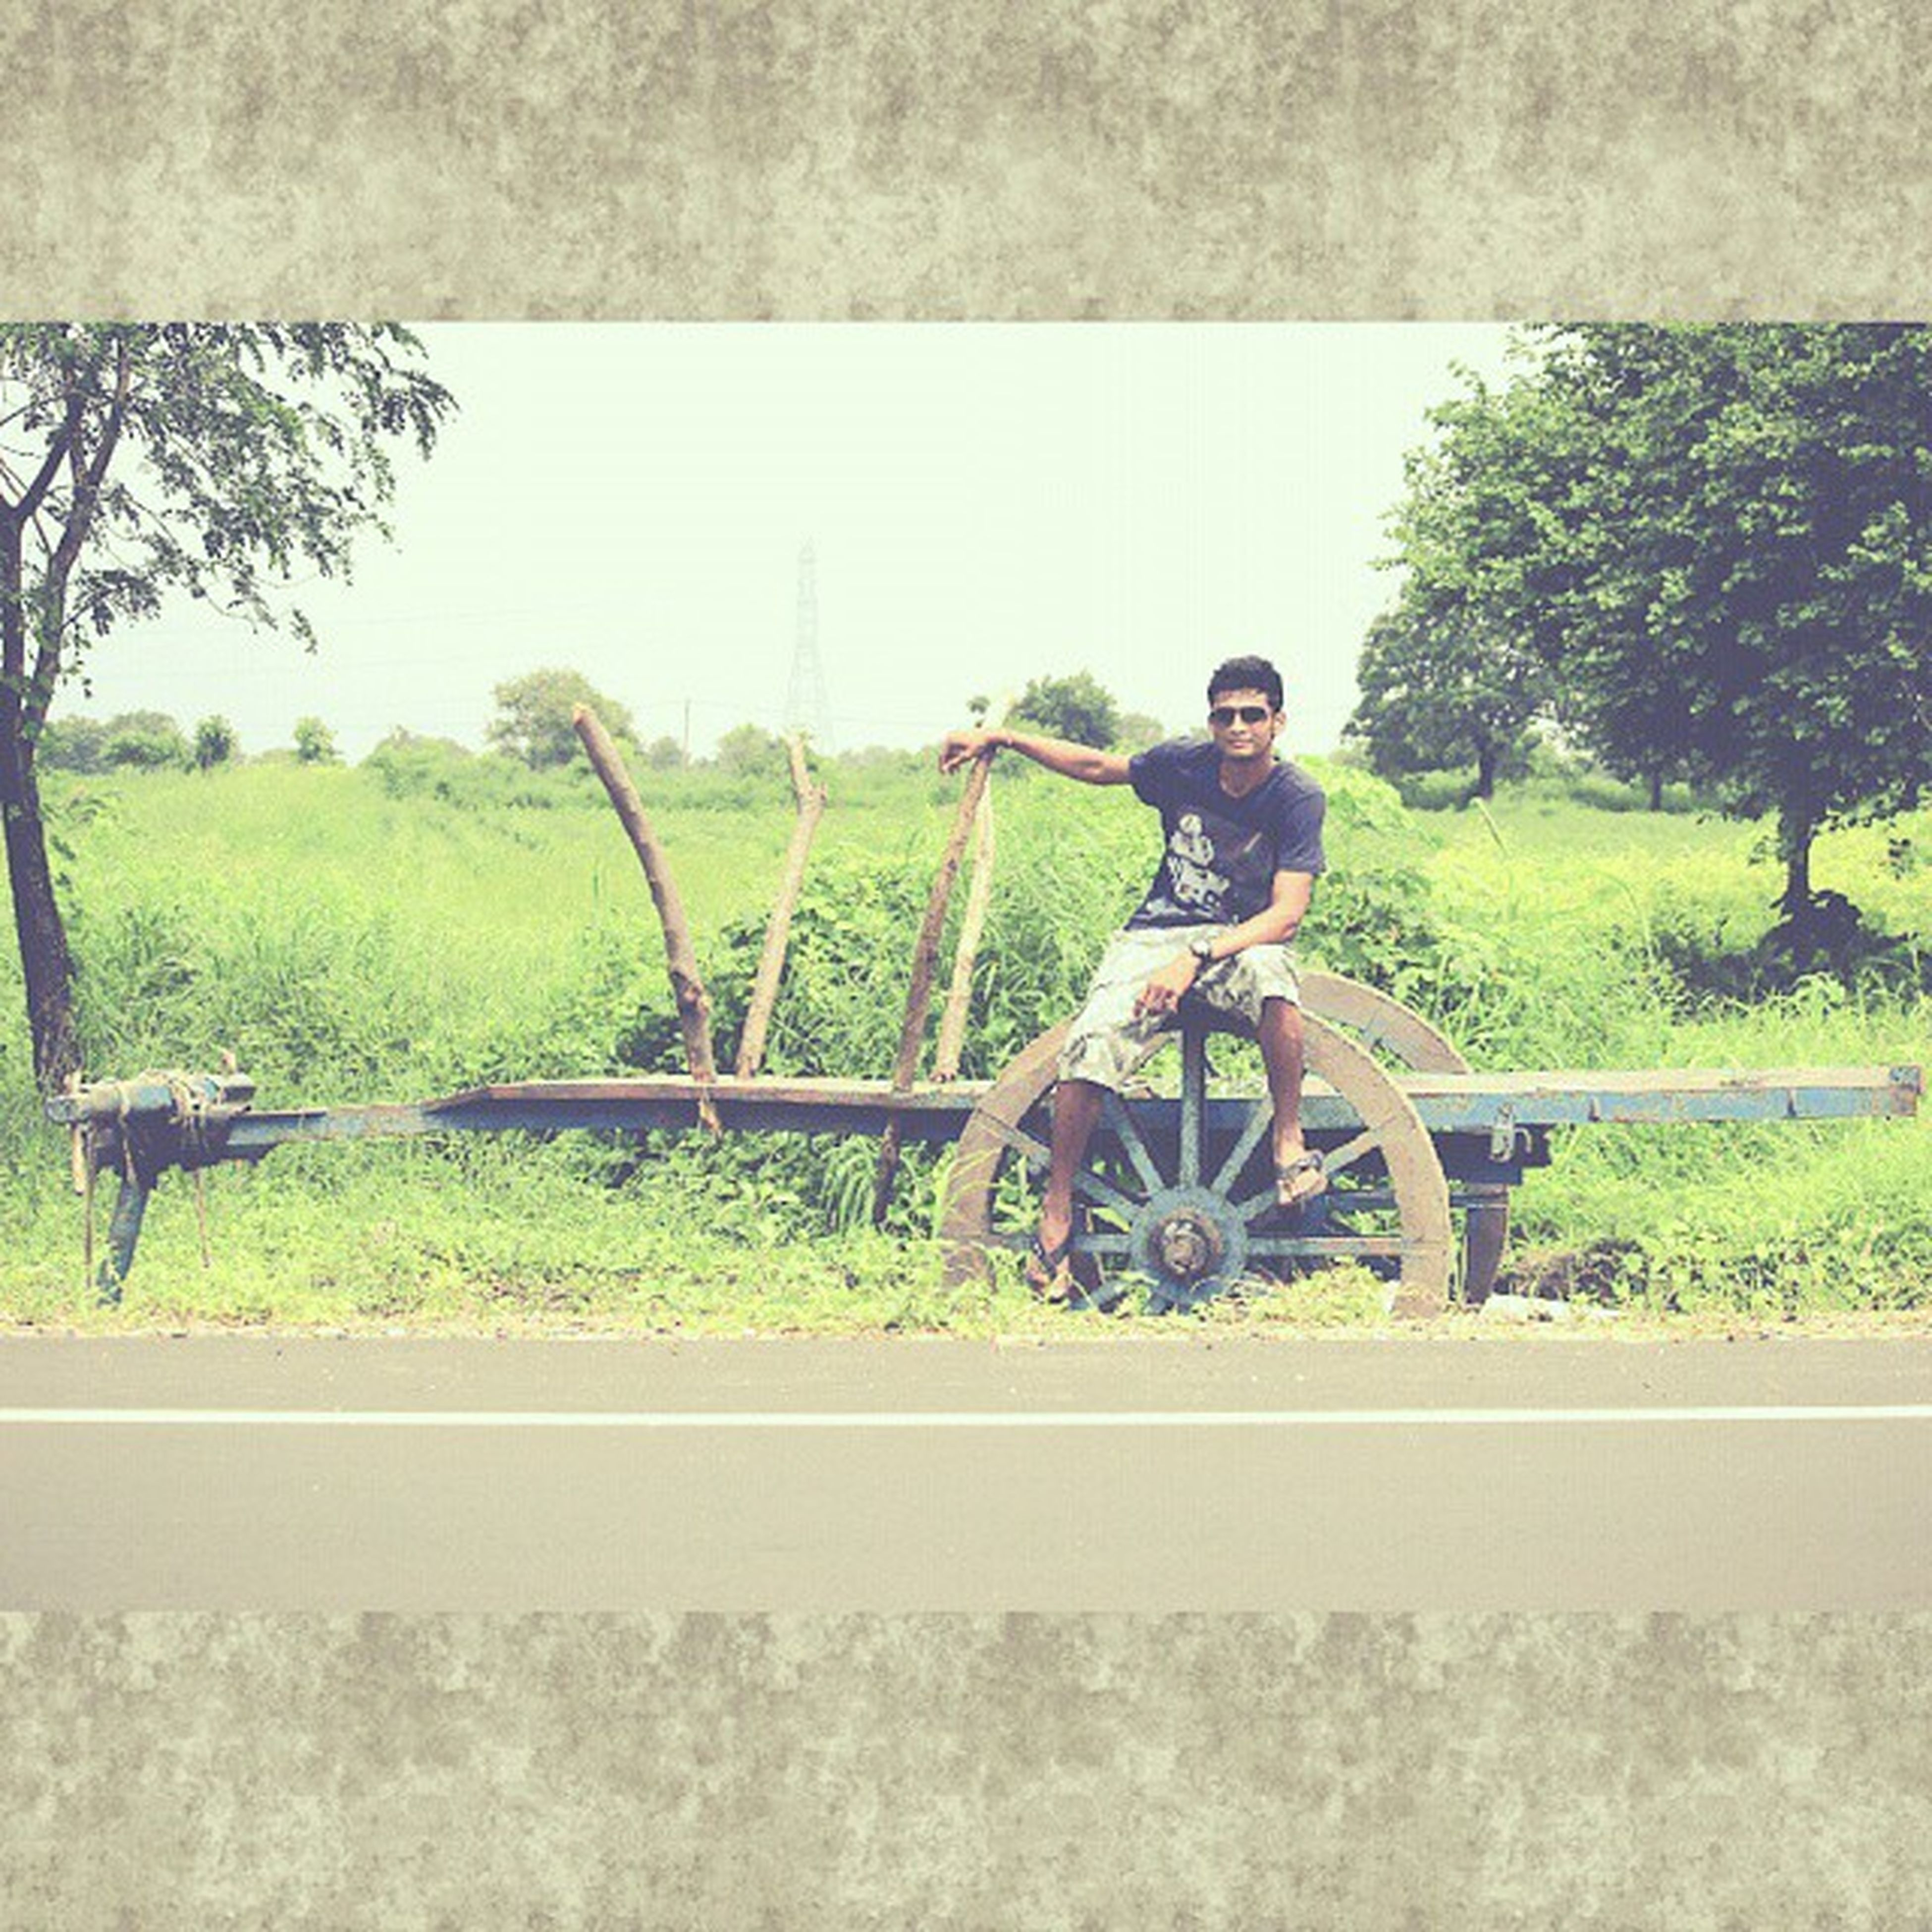 lifestyles, leisure activity, grass, tree, full length, field, casual clothing, person, bicycle, clear sky, green color, transportation, young adult, day, childhood, nature, standing, landscape